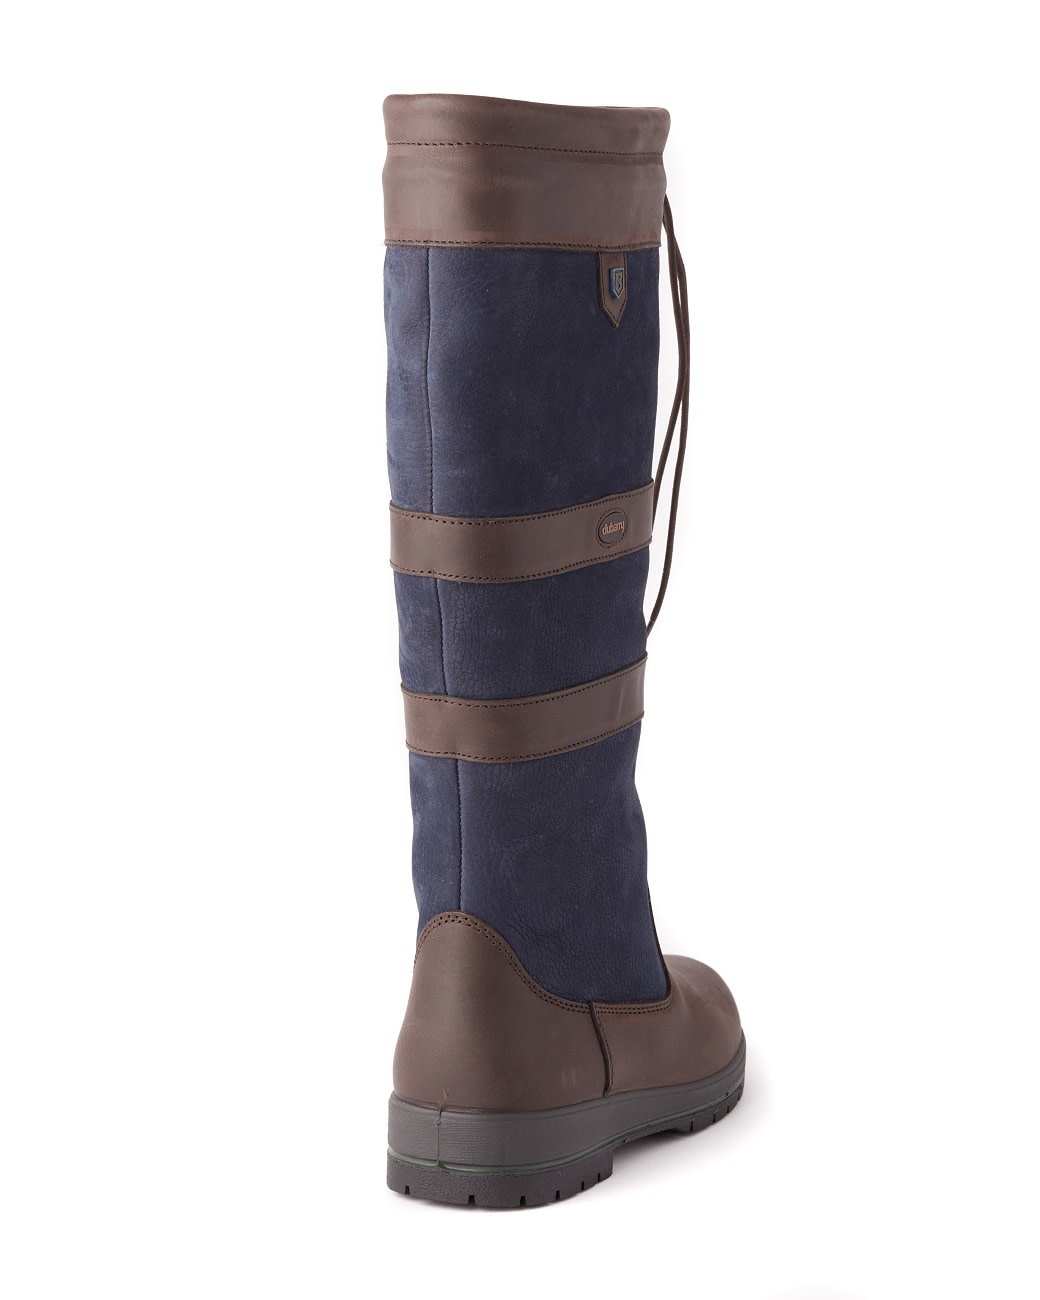 Dubarry Galway RegularFit™ Navy/Brown-4